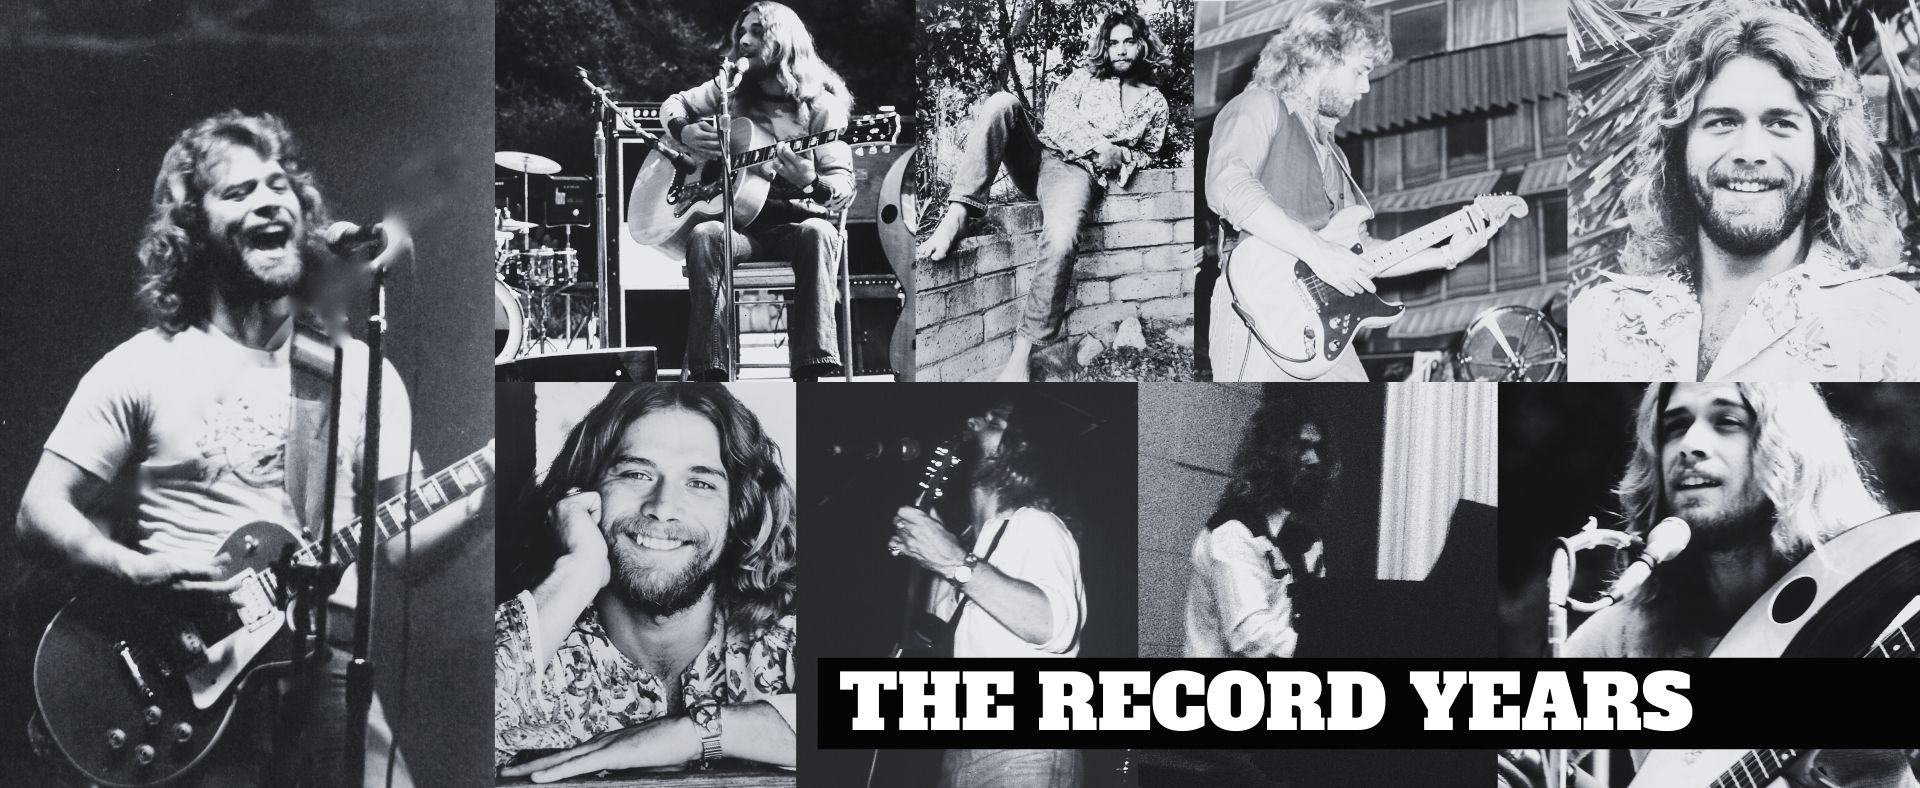 Richard Torrance - The Record Years